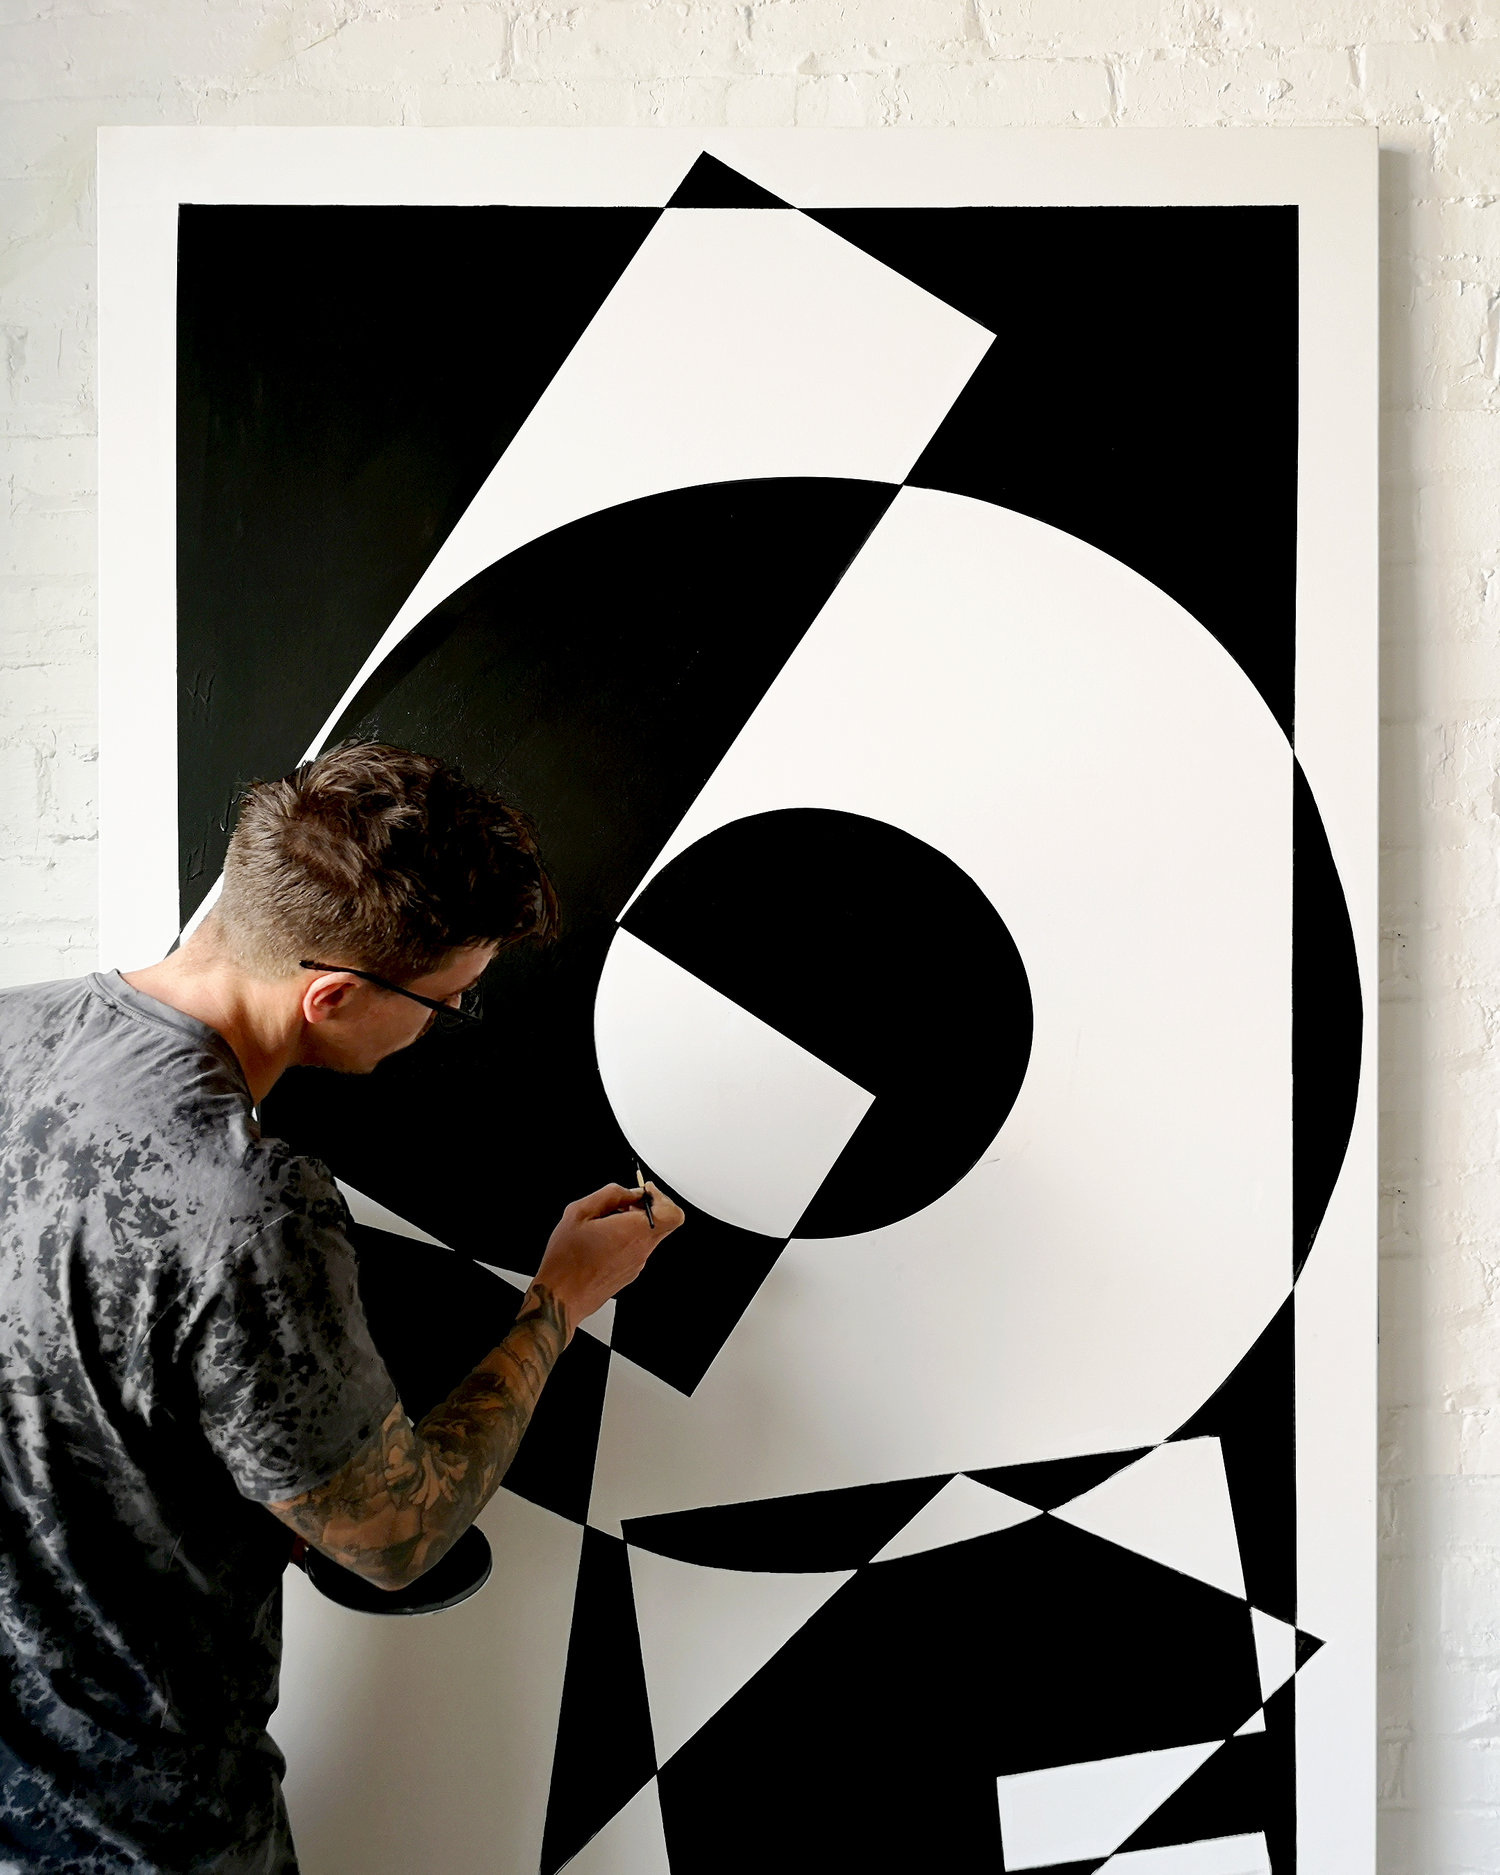 Image of Ben Johnston creating Love mural